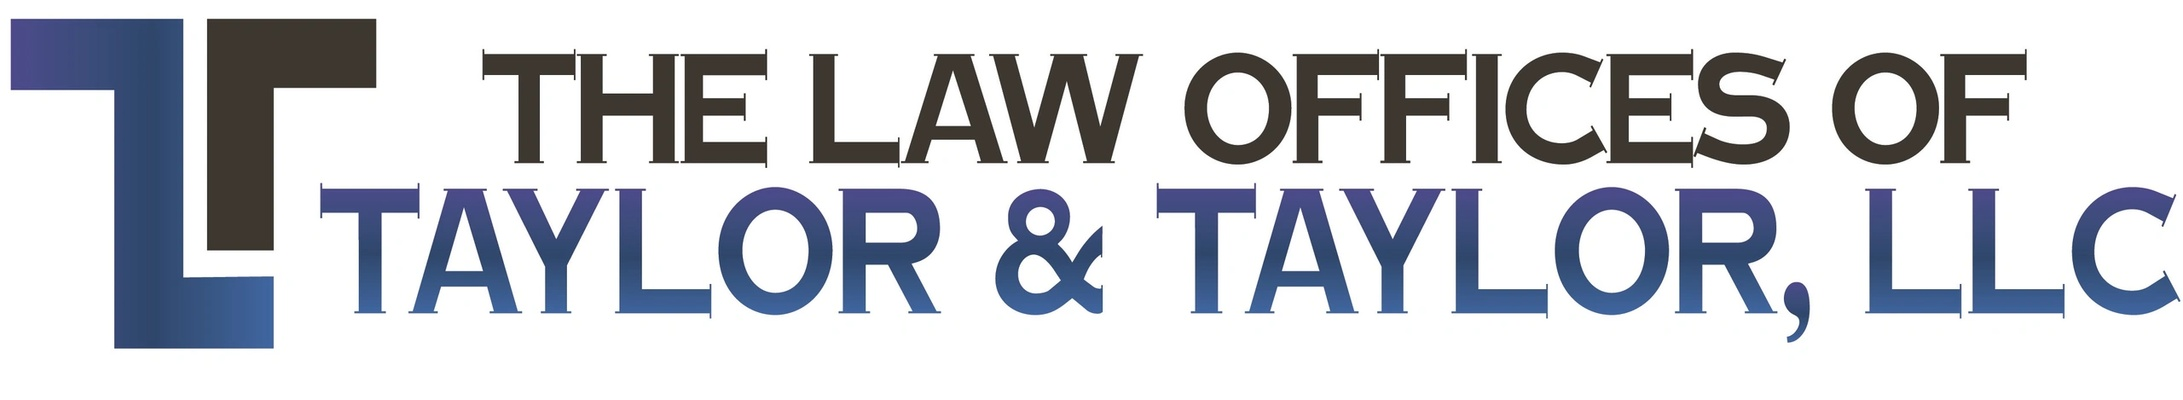 The Law Offices of Taylor & Taylor, LLC